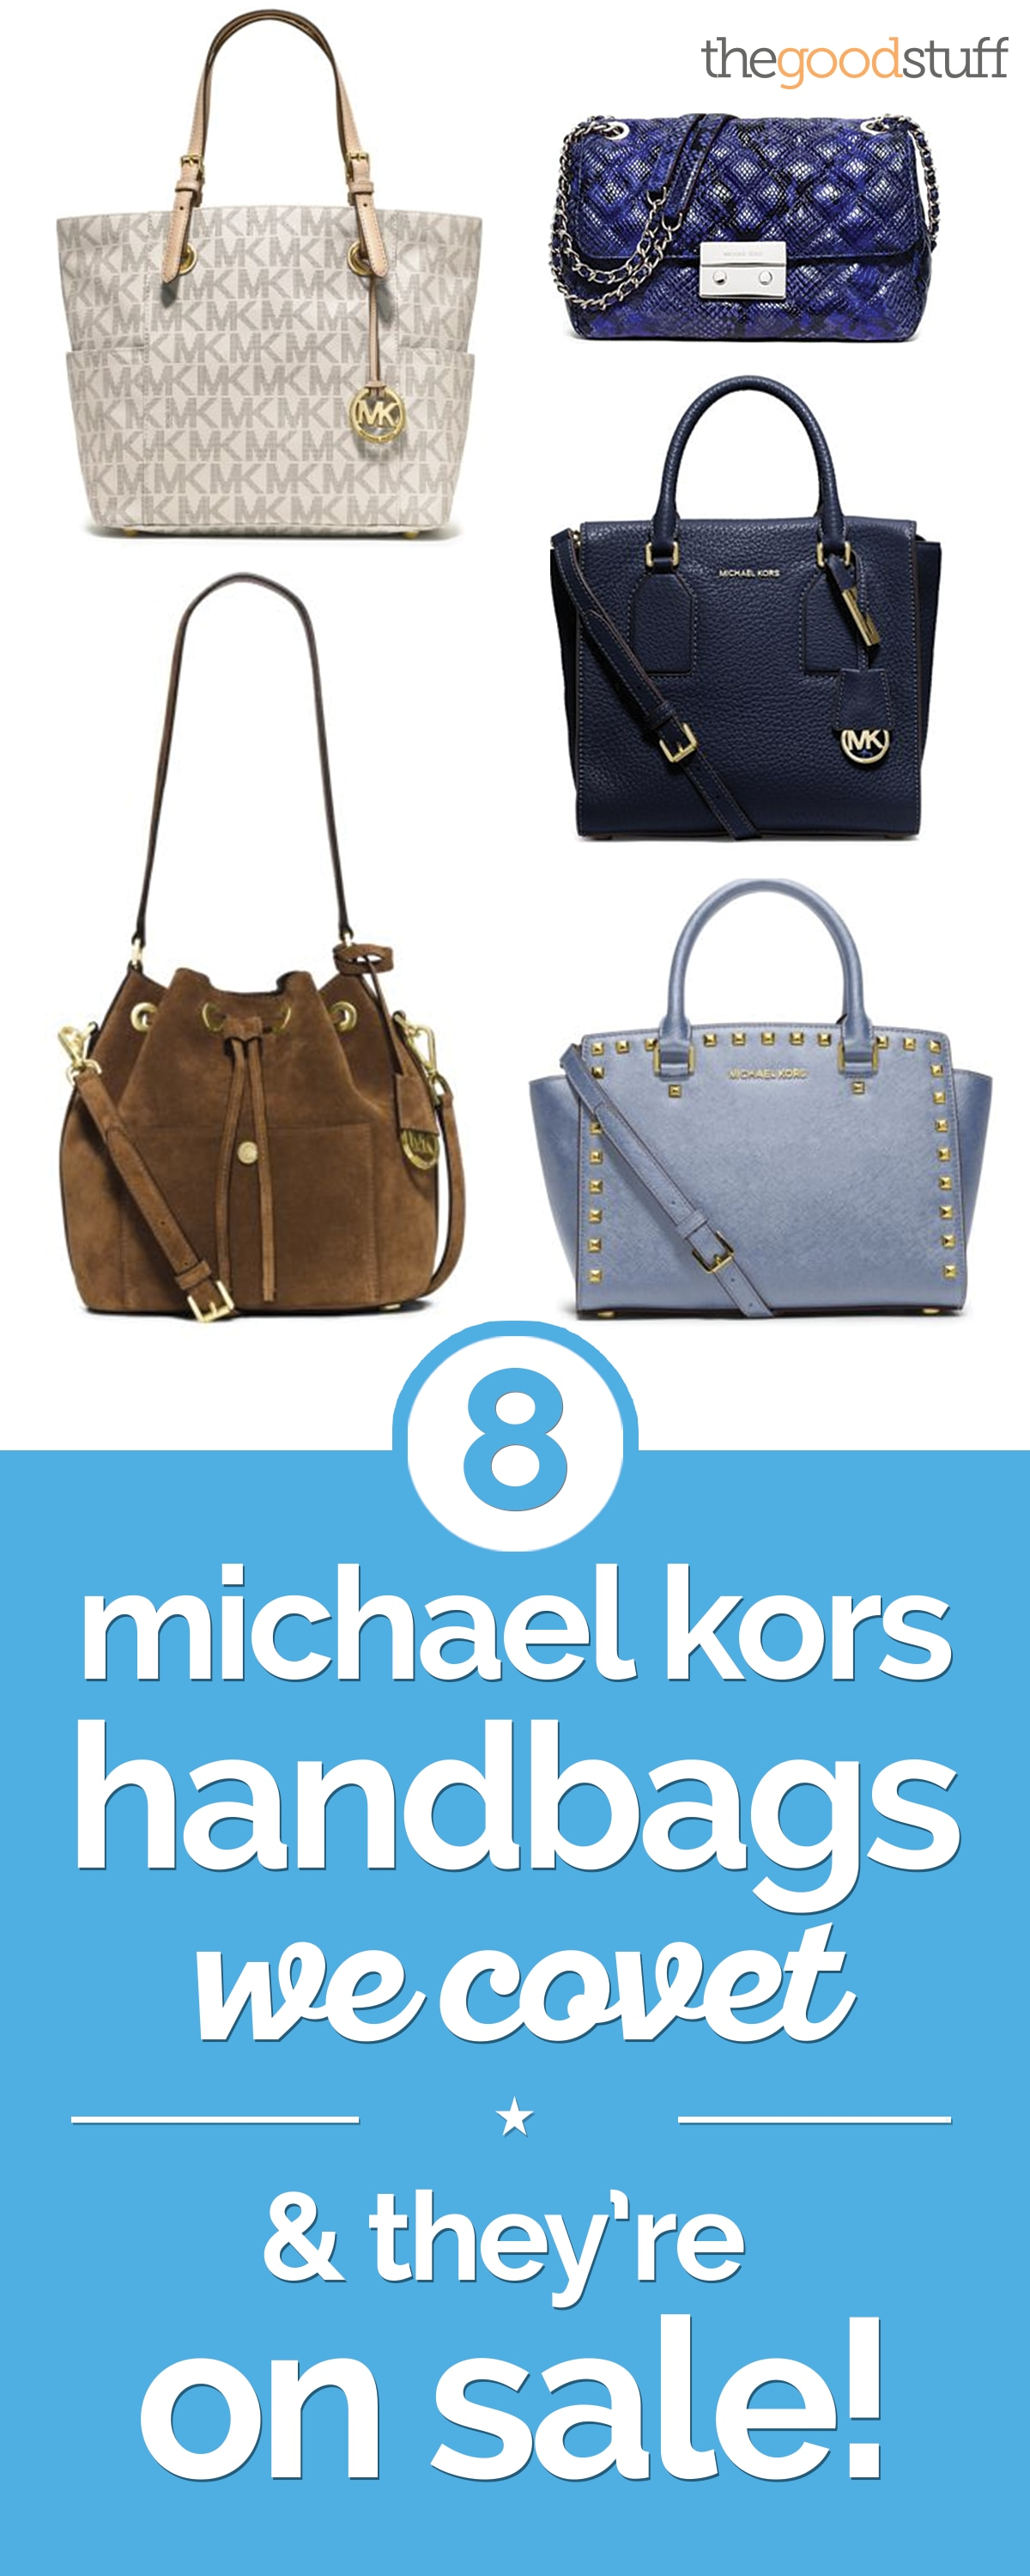 030f6d6090 8 Michael Kors Handbags We Covet —   They re On Sale! - thegoodstuff